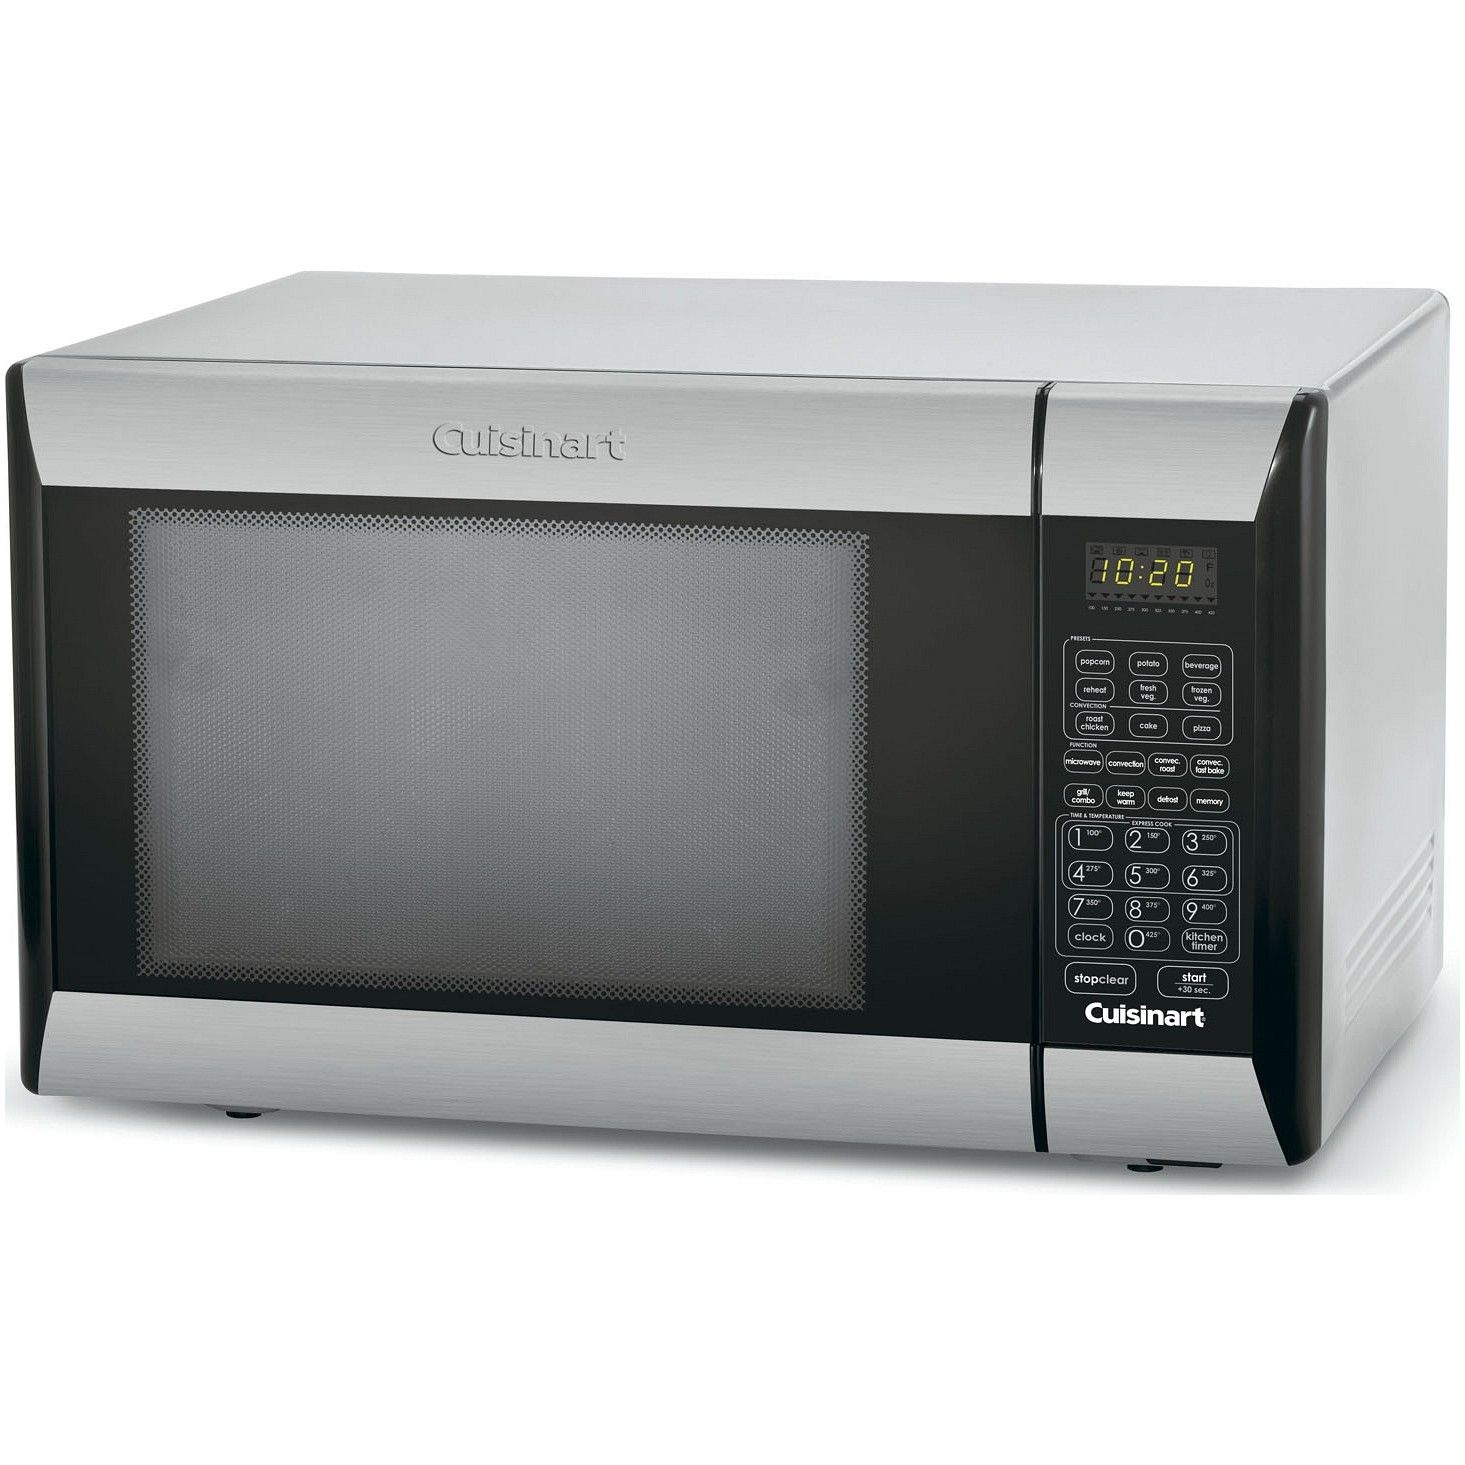 Cuisinart 1000 Watt Convection Microwave Oven Grill Stainless